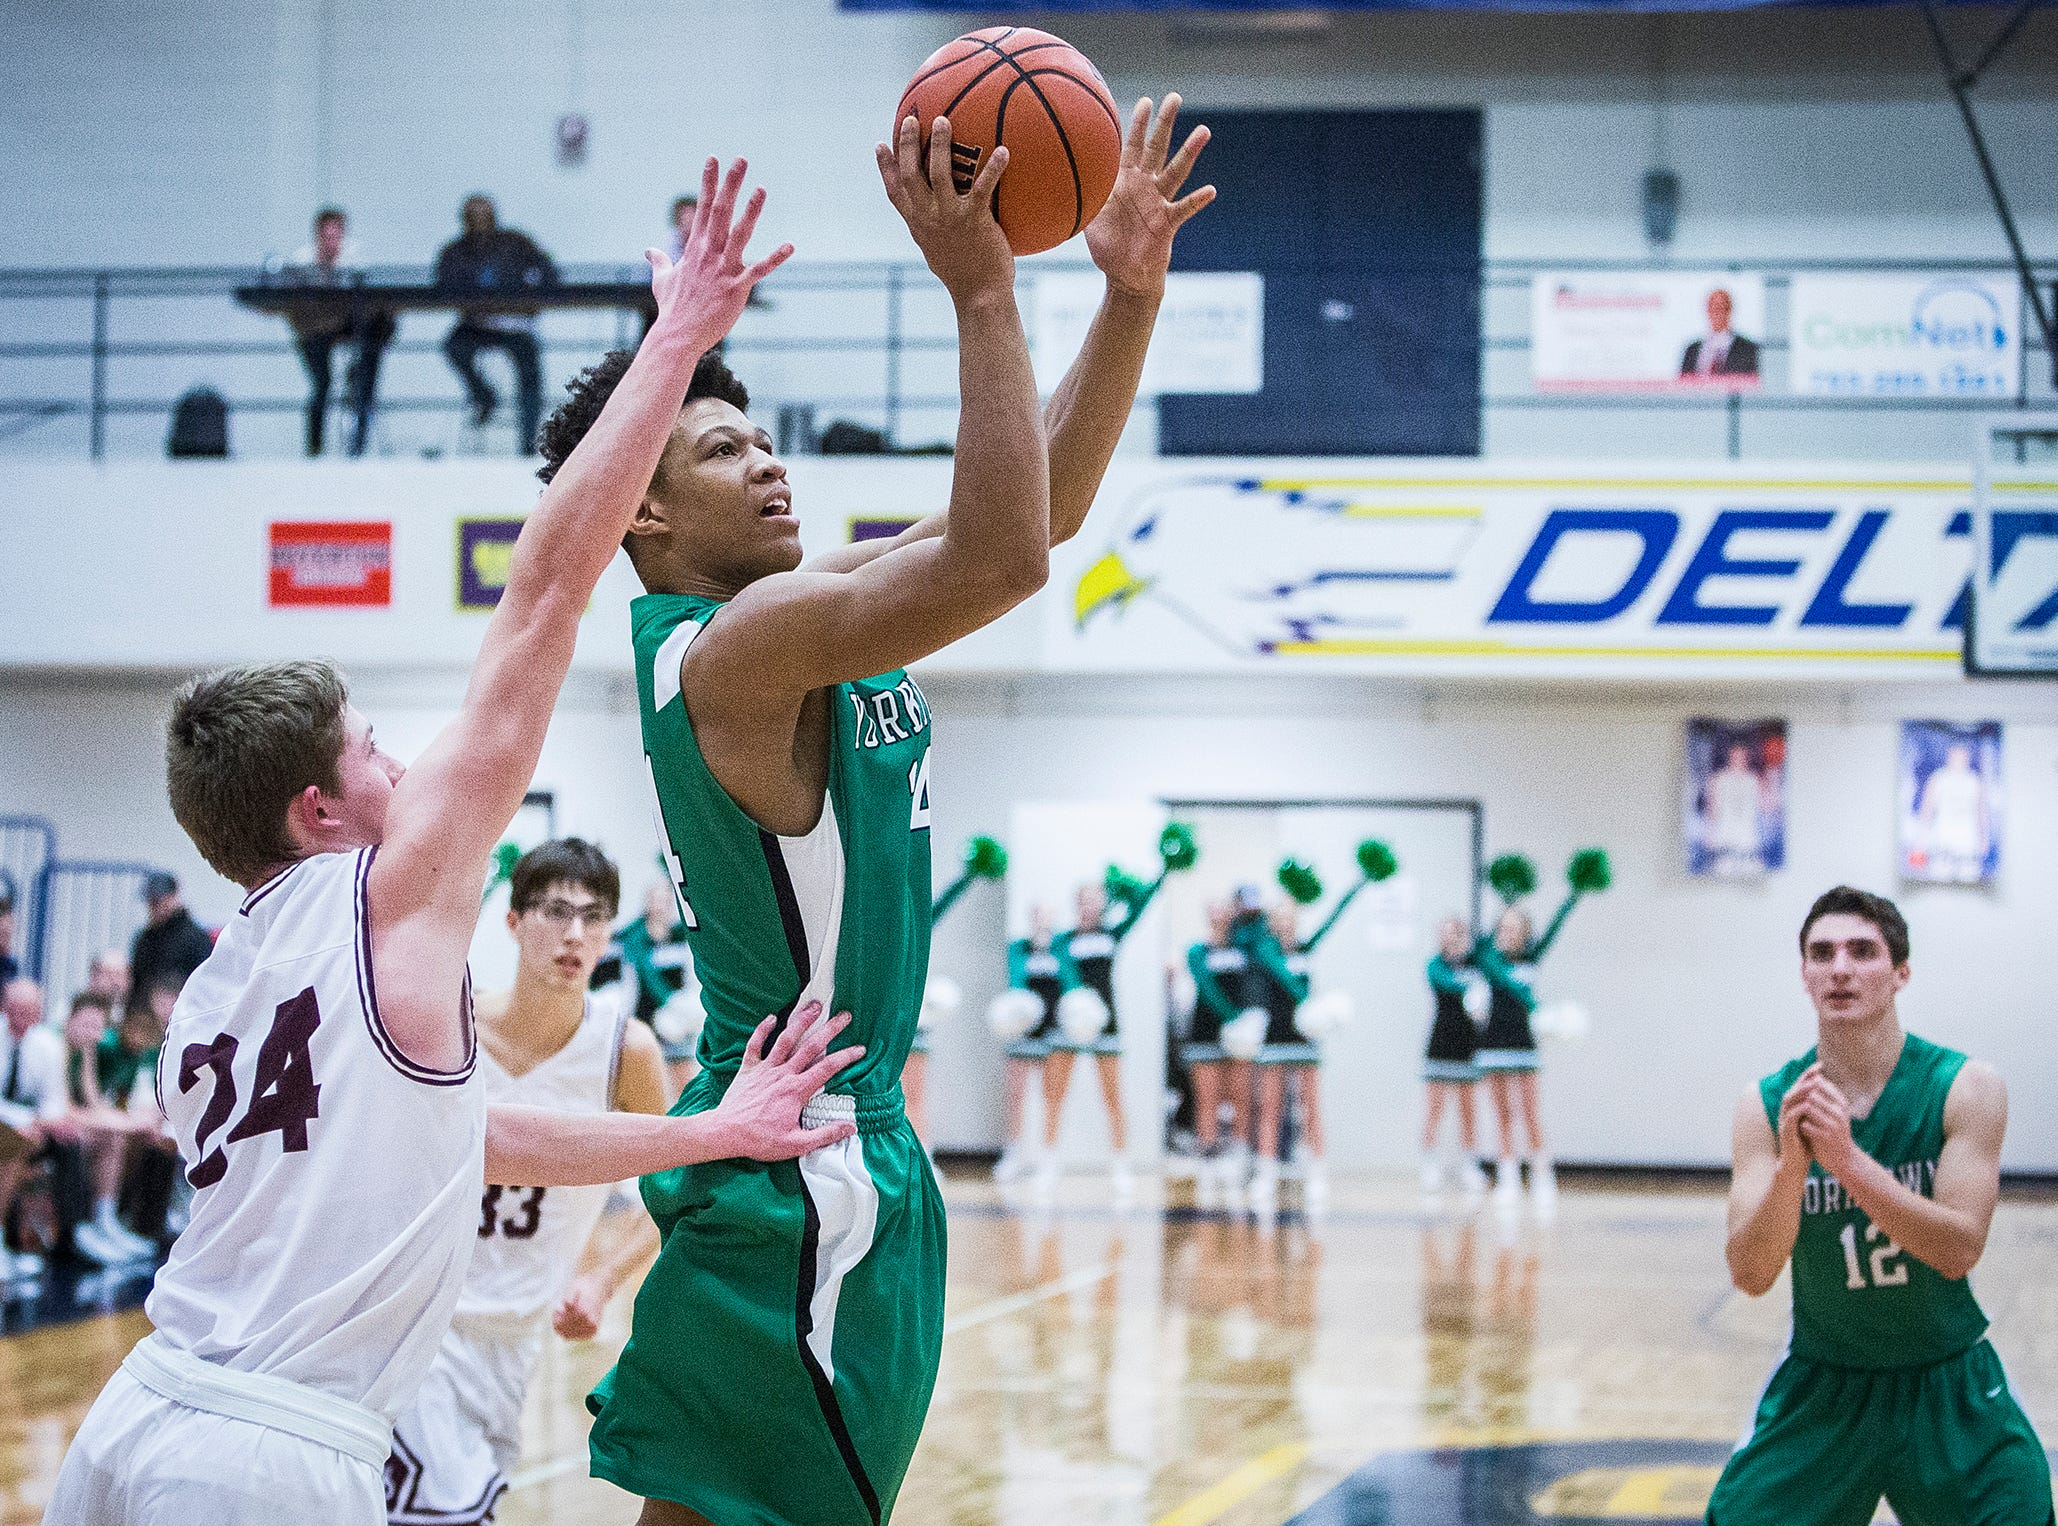 Yorktown's Daiviante Osuna shoots past Wes-Del's defense during the Delaware County Basketball Tournament at Delta High School Tuesday, Jan. 8, 2019.